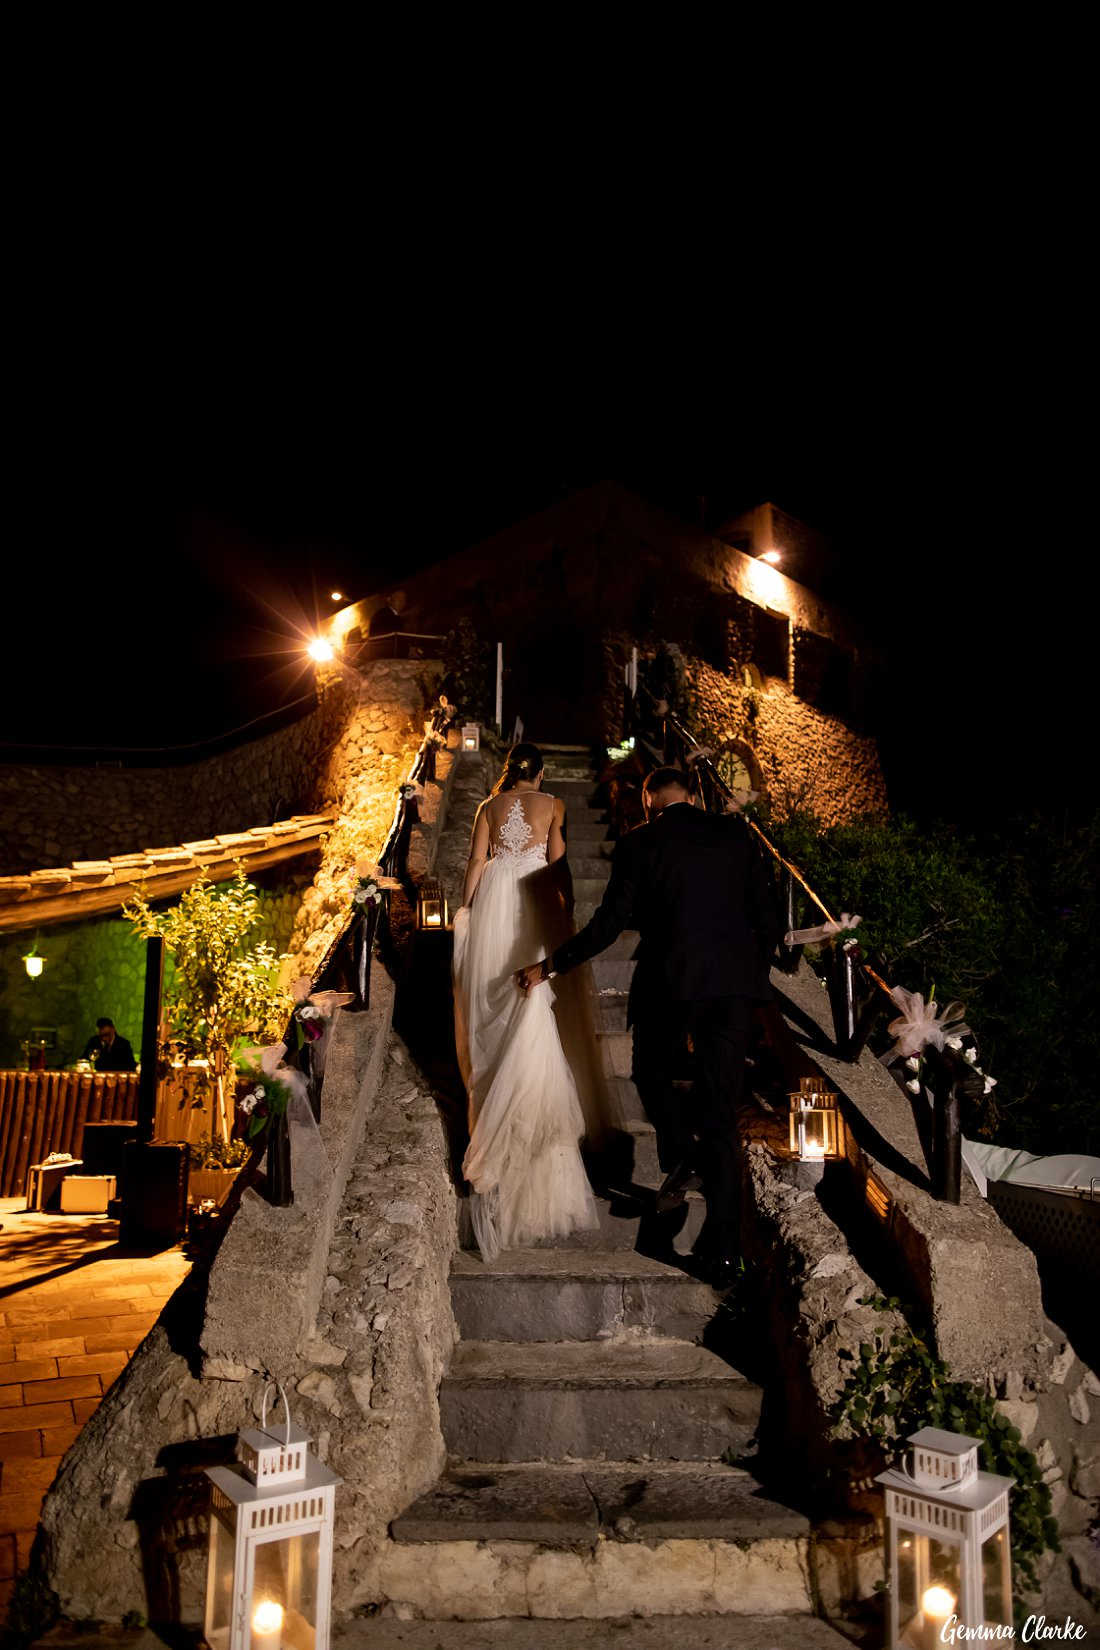 Groom helps the bride with her dress while walking up the Torre la Cerniola stairs at this Italian destination wedding